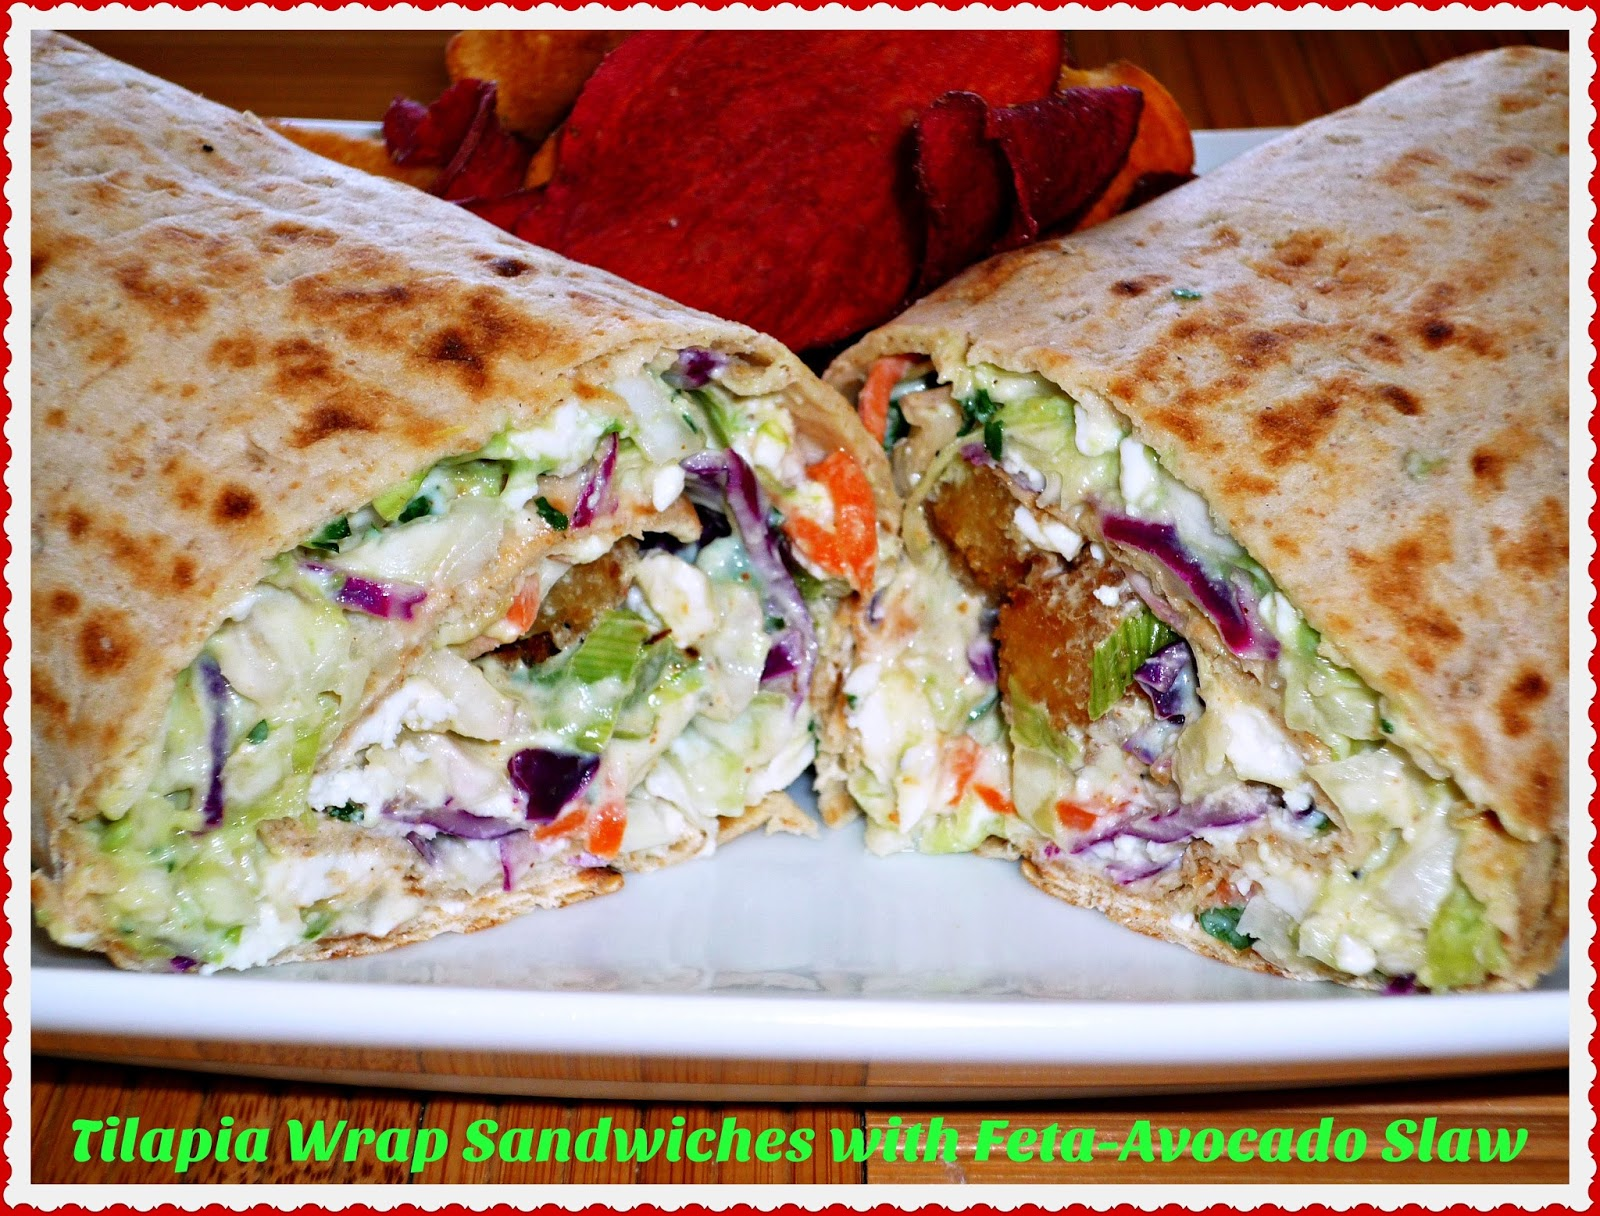 The weekend gourmet tilapia wrap sandwiches with feta for Fish stick sandwich